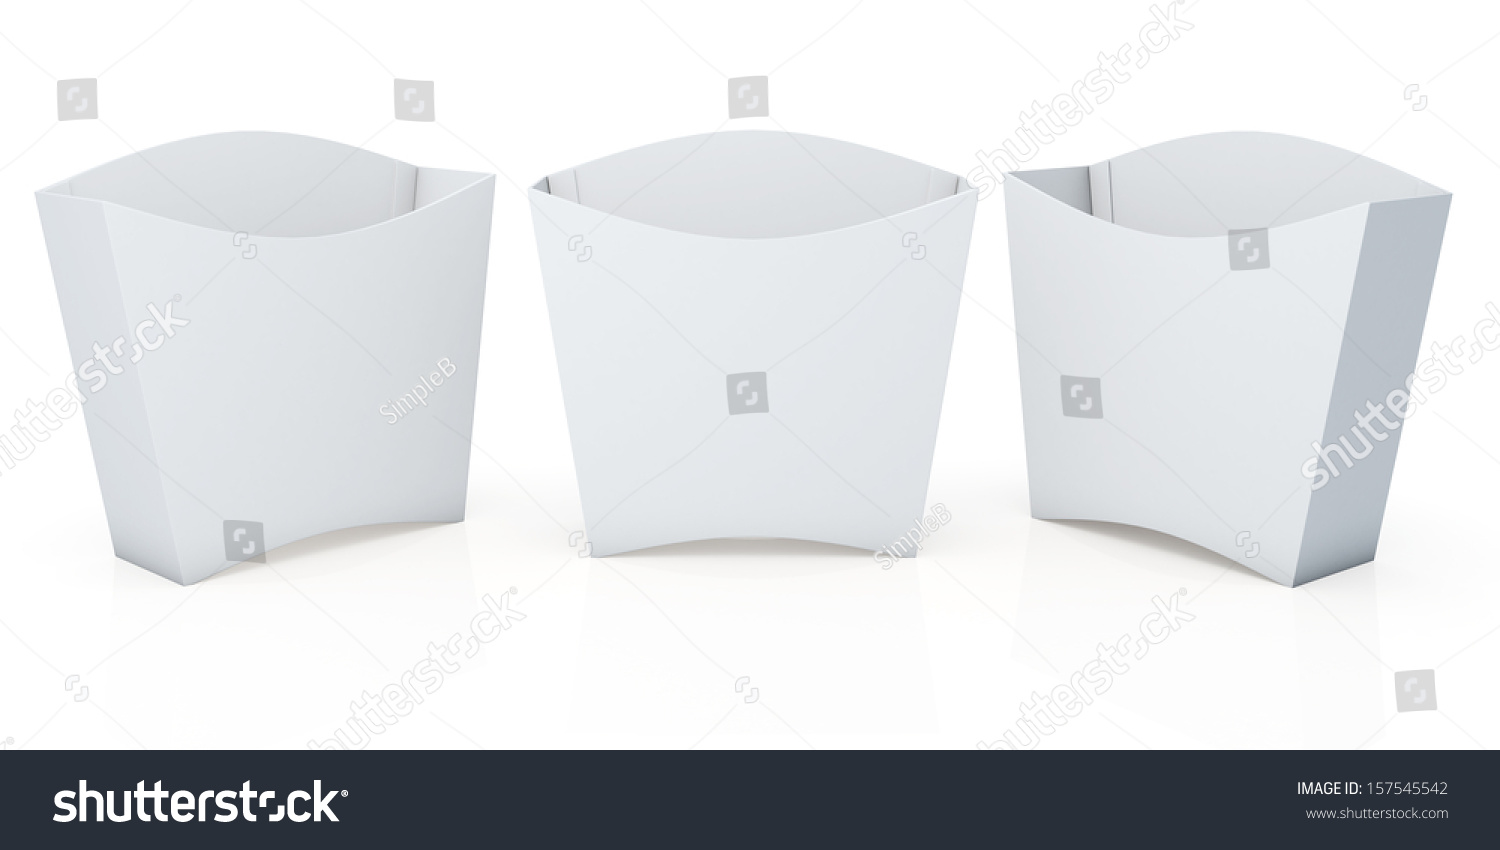 3d Clean White Container For French Fries Snack Products Blank Template In Isolated Background With